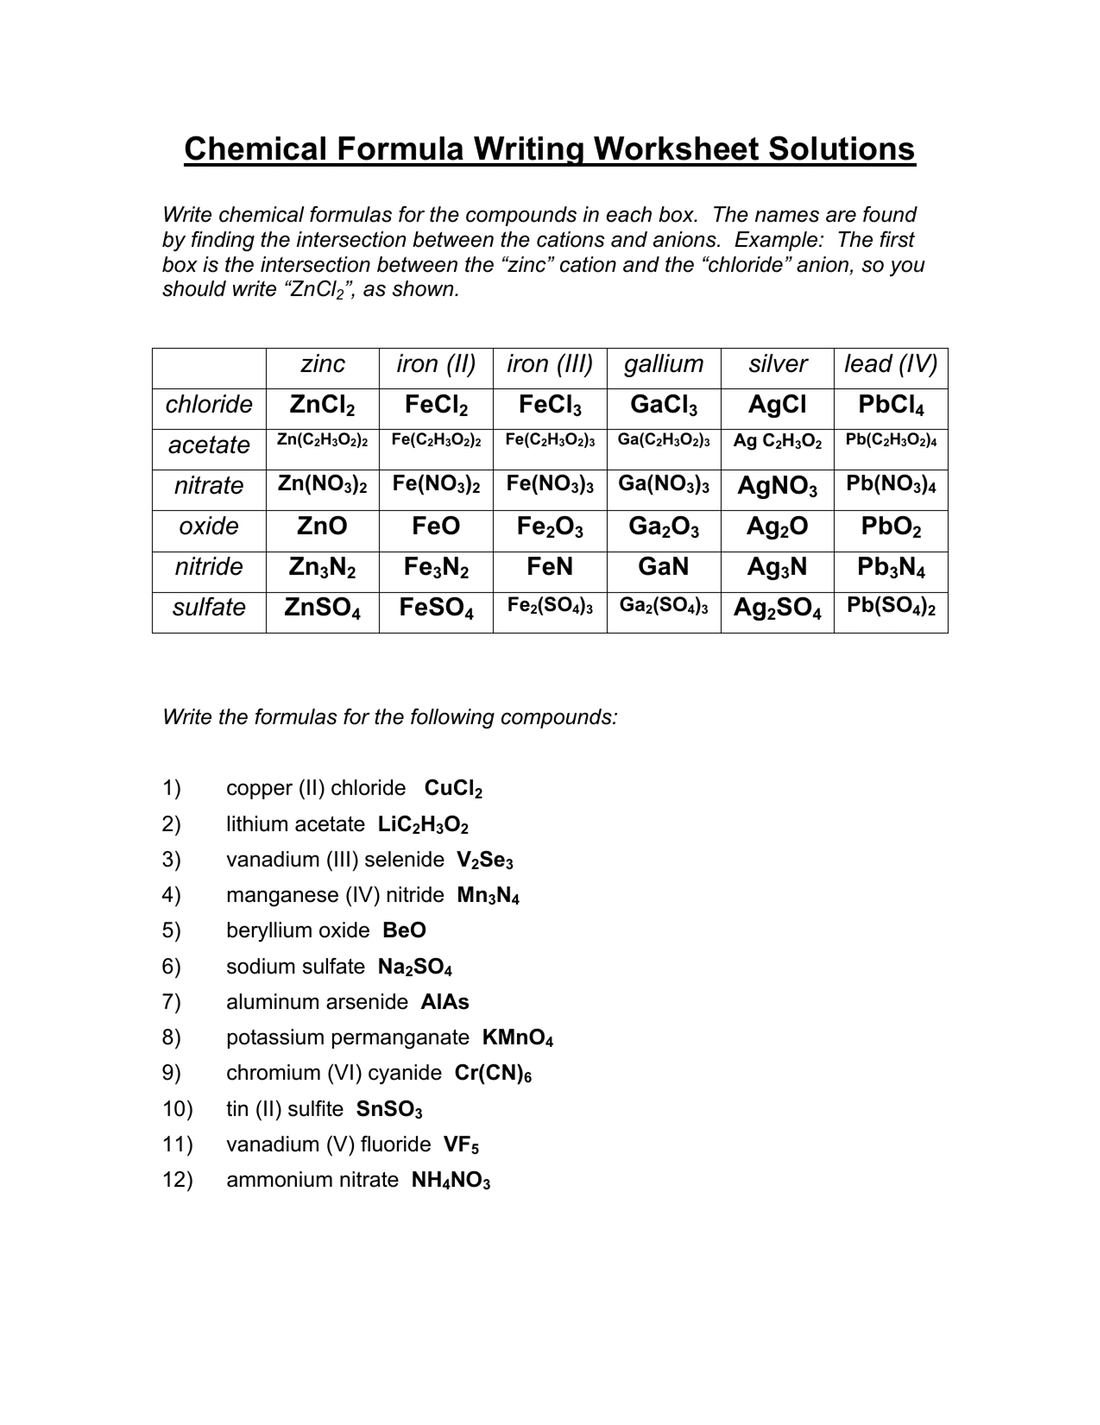 worksheet Writing Formulas Worksheet writing formulas for ionic compounds worksheet worksheets dimensions published in compound formula worksheets